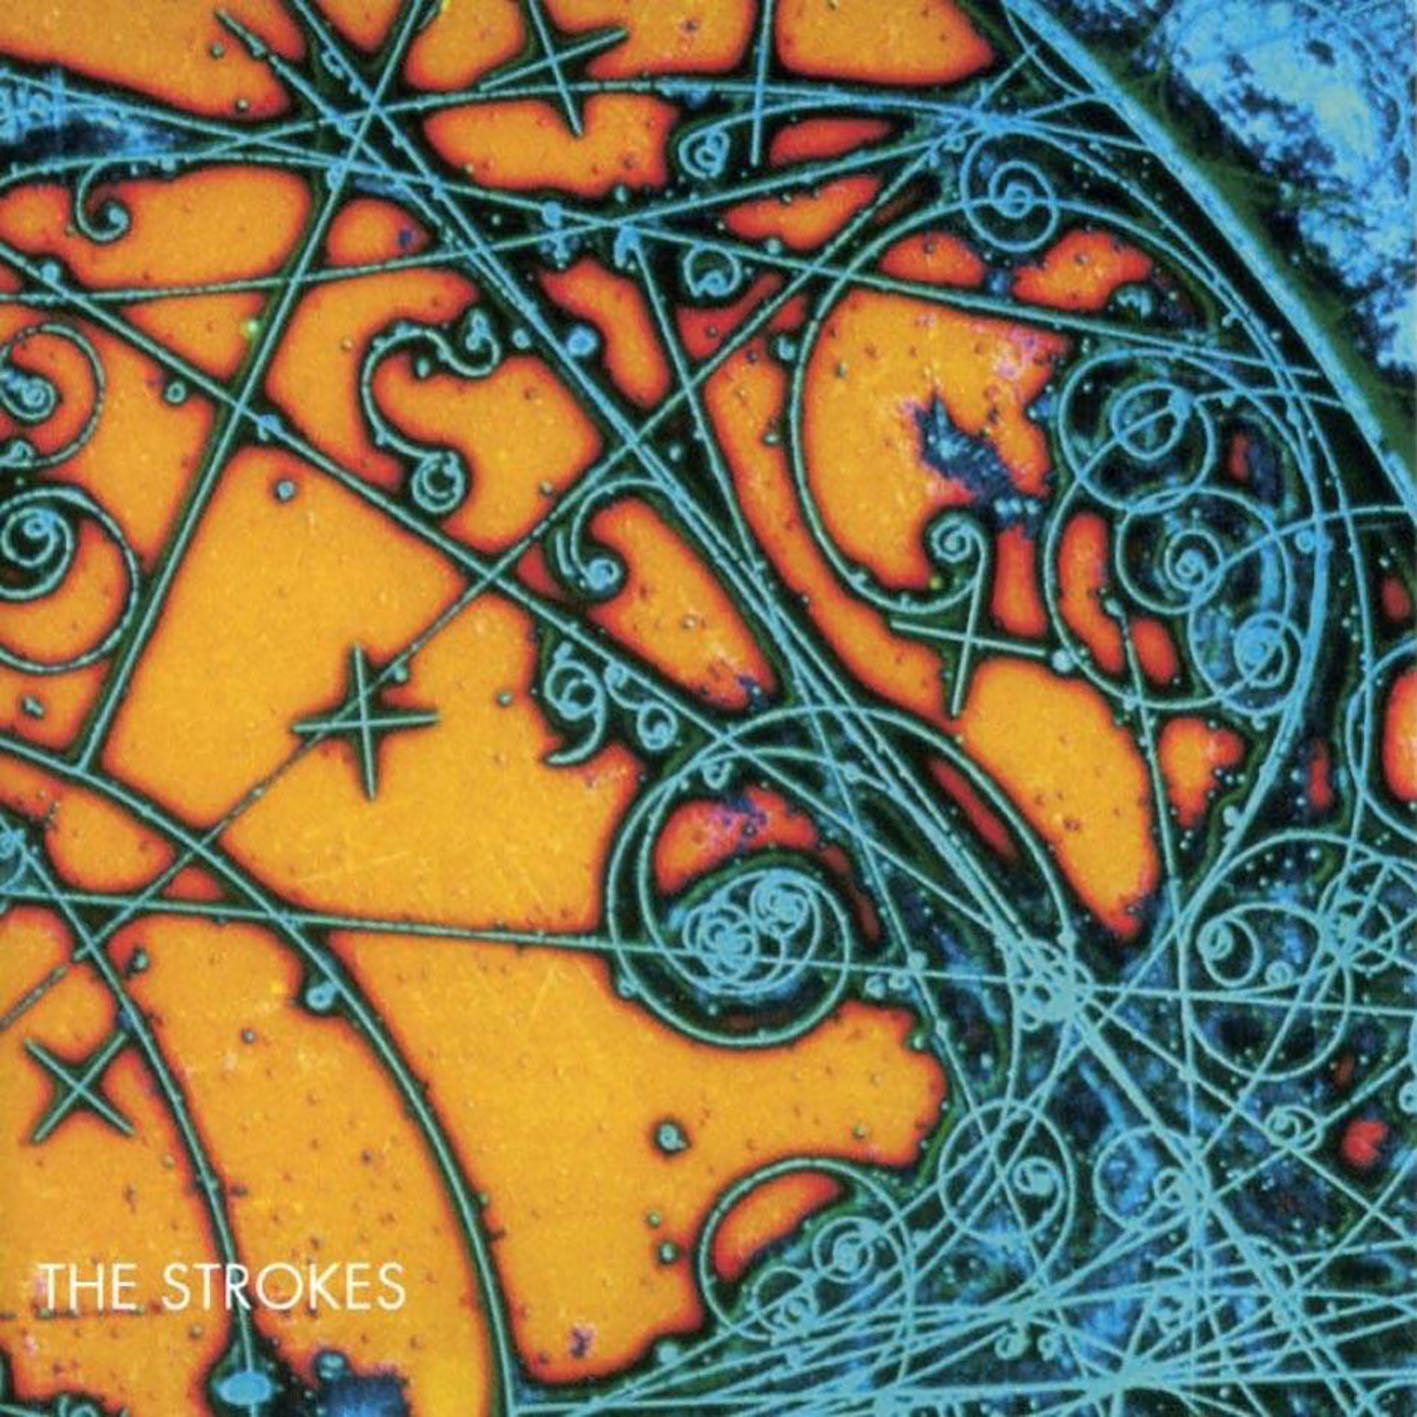 Vinilo : The Strokes - Is This It (Limited Edition)